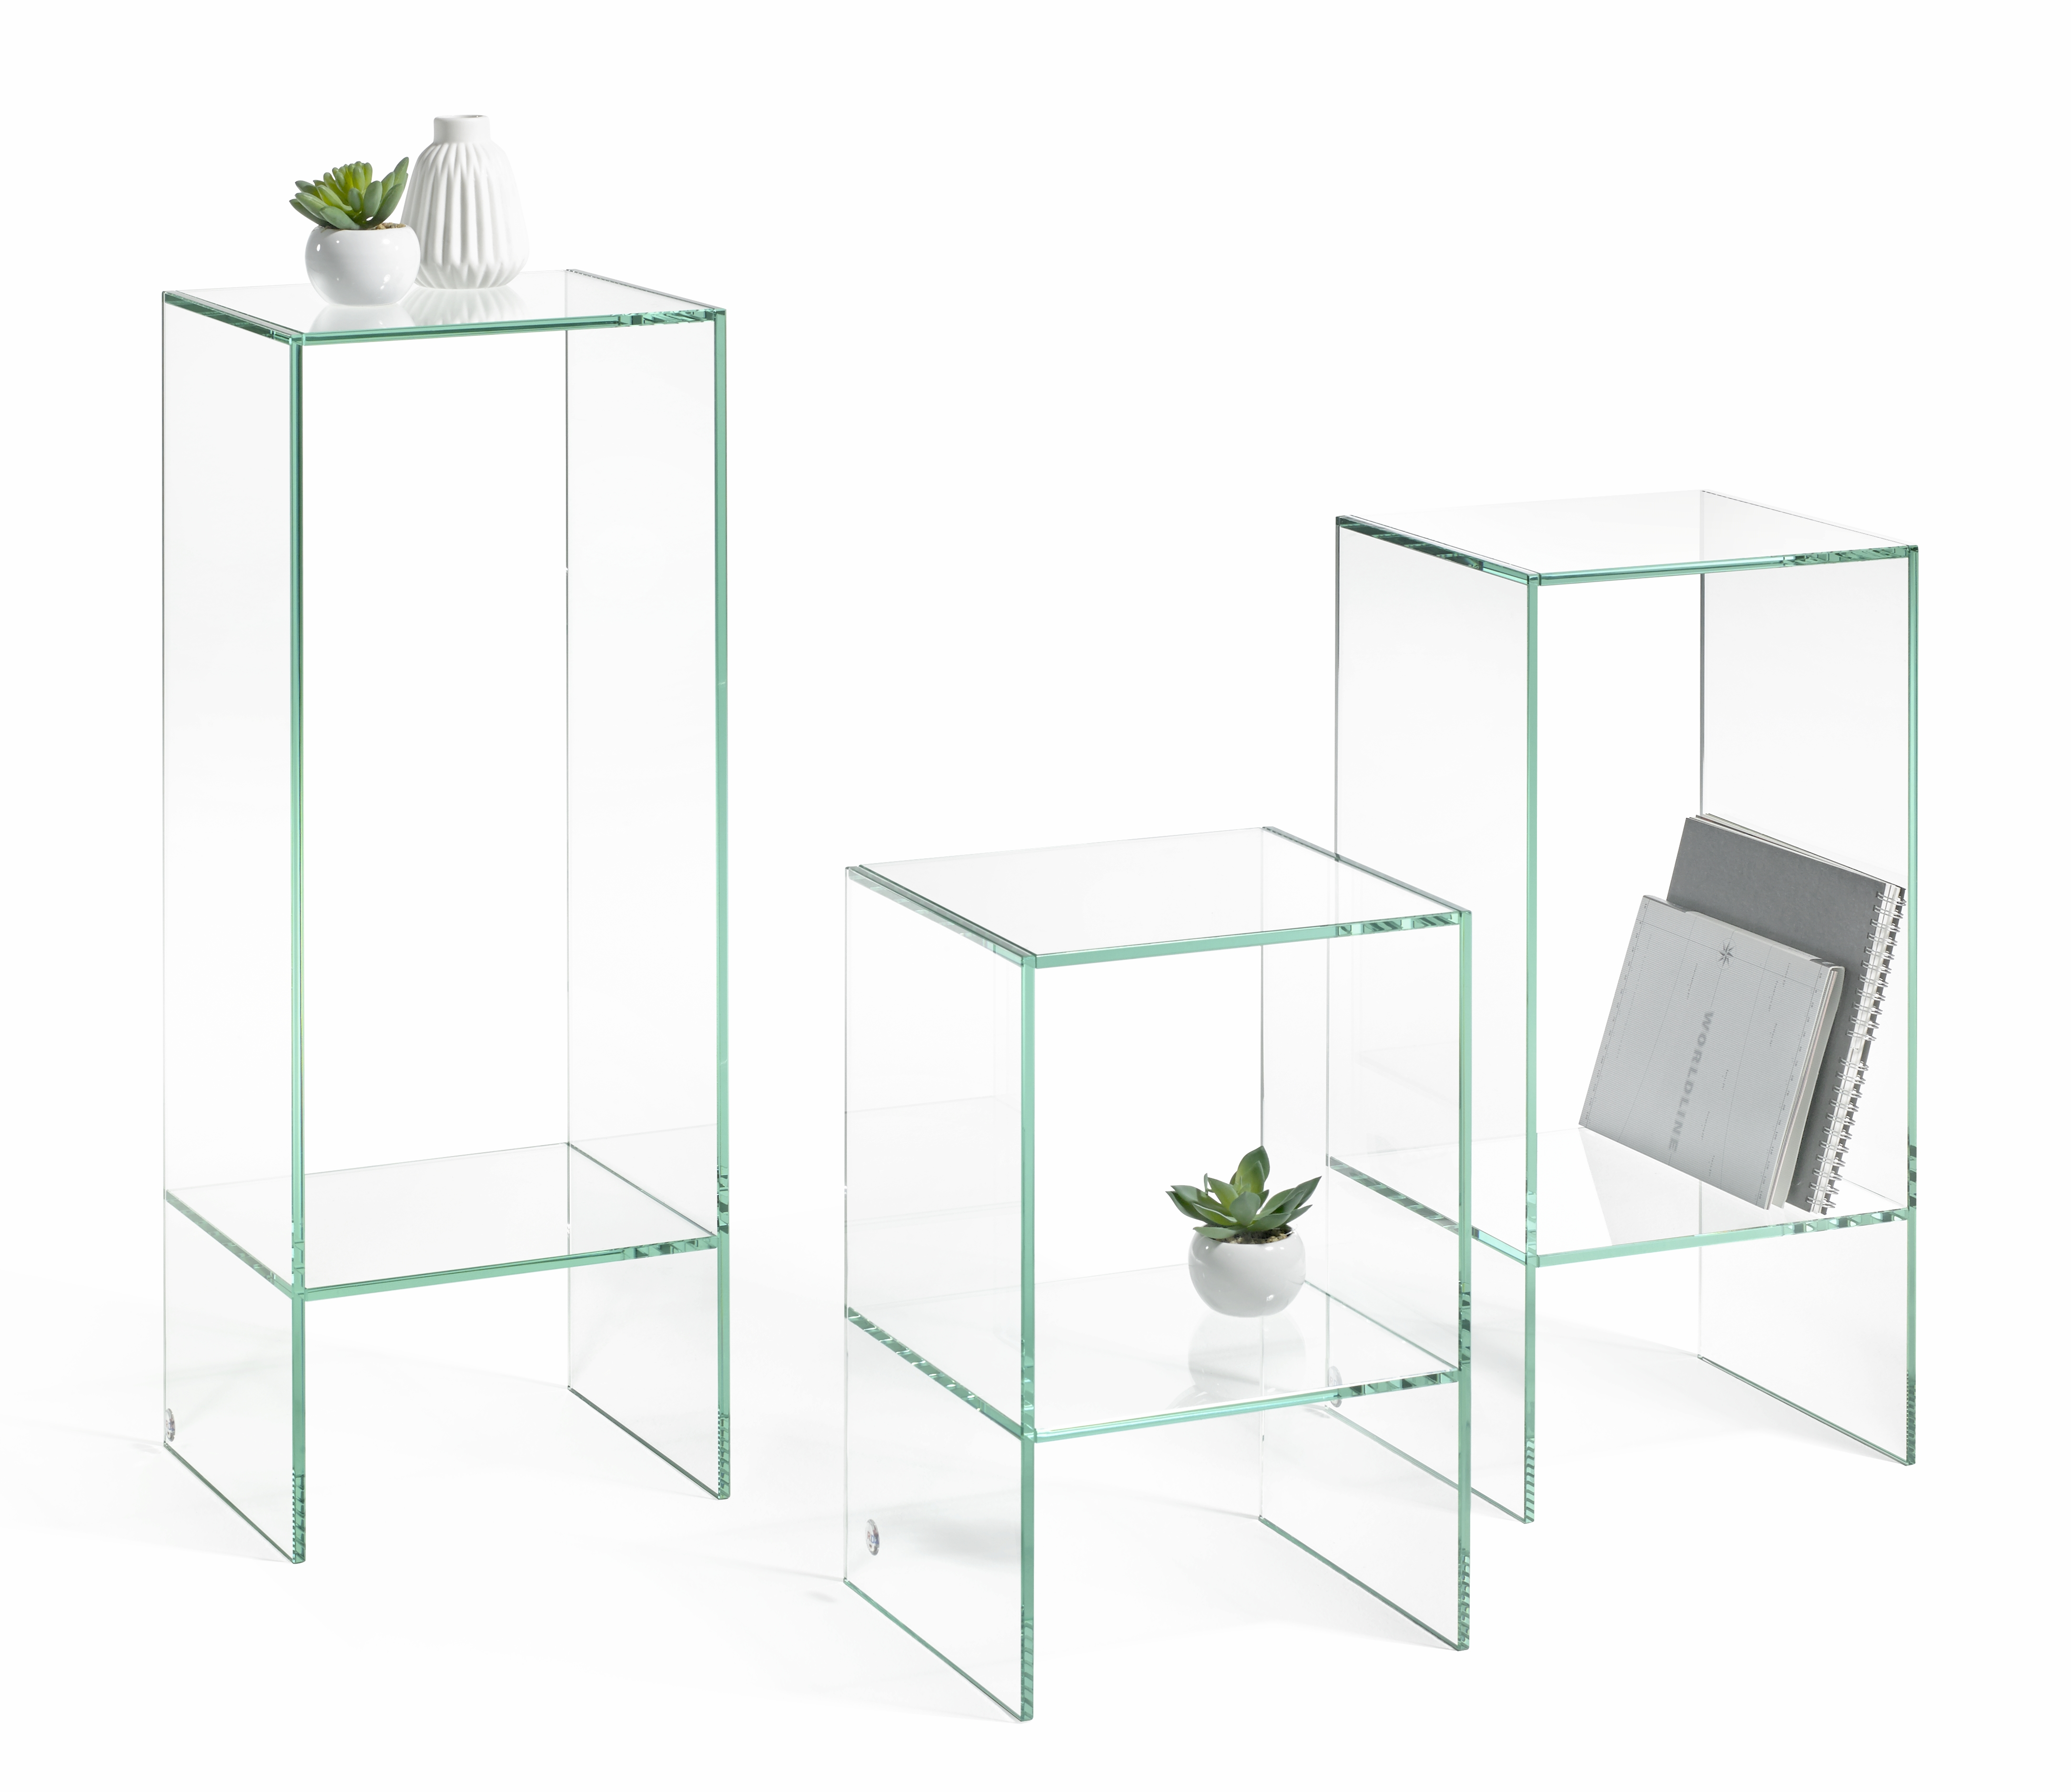 blumens ulen glas m bel wohnen howe deko online shop. Black Bedroom Furniture Sets. Home Design Ideas